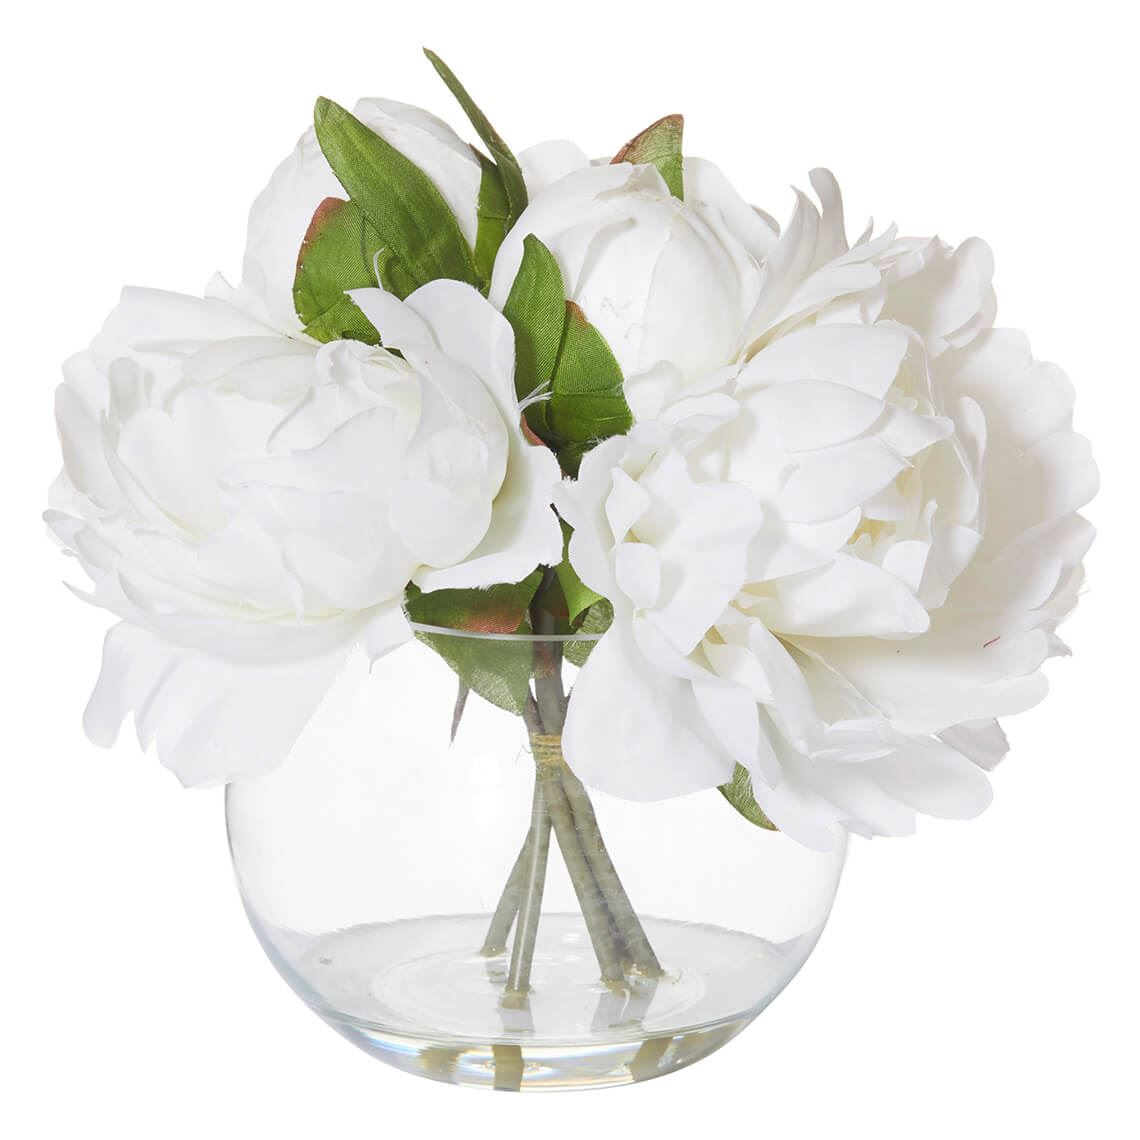 Peony In Vase Size W 22cm x D 22cm x H 20cm in White Plastic/Fabric/Wire Freedom by Freedom, a Plants for sale on Style Sourcebook